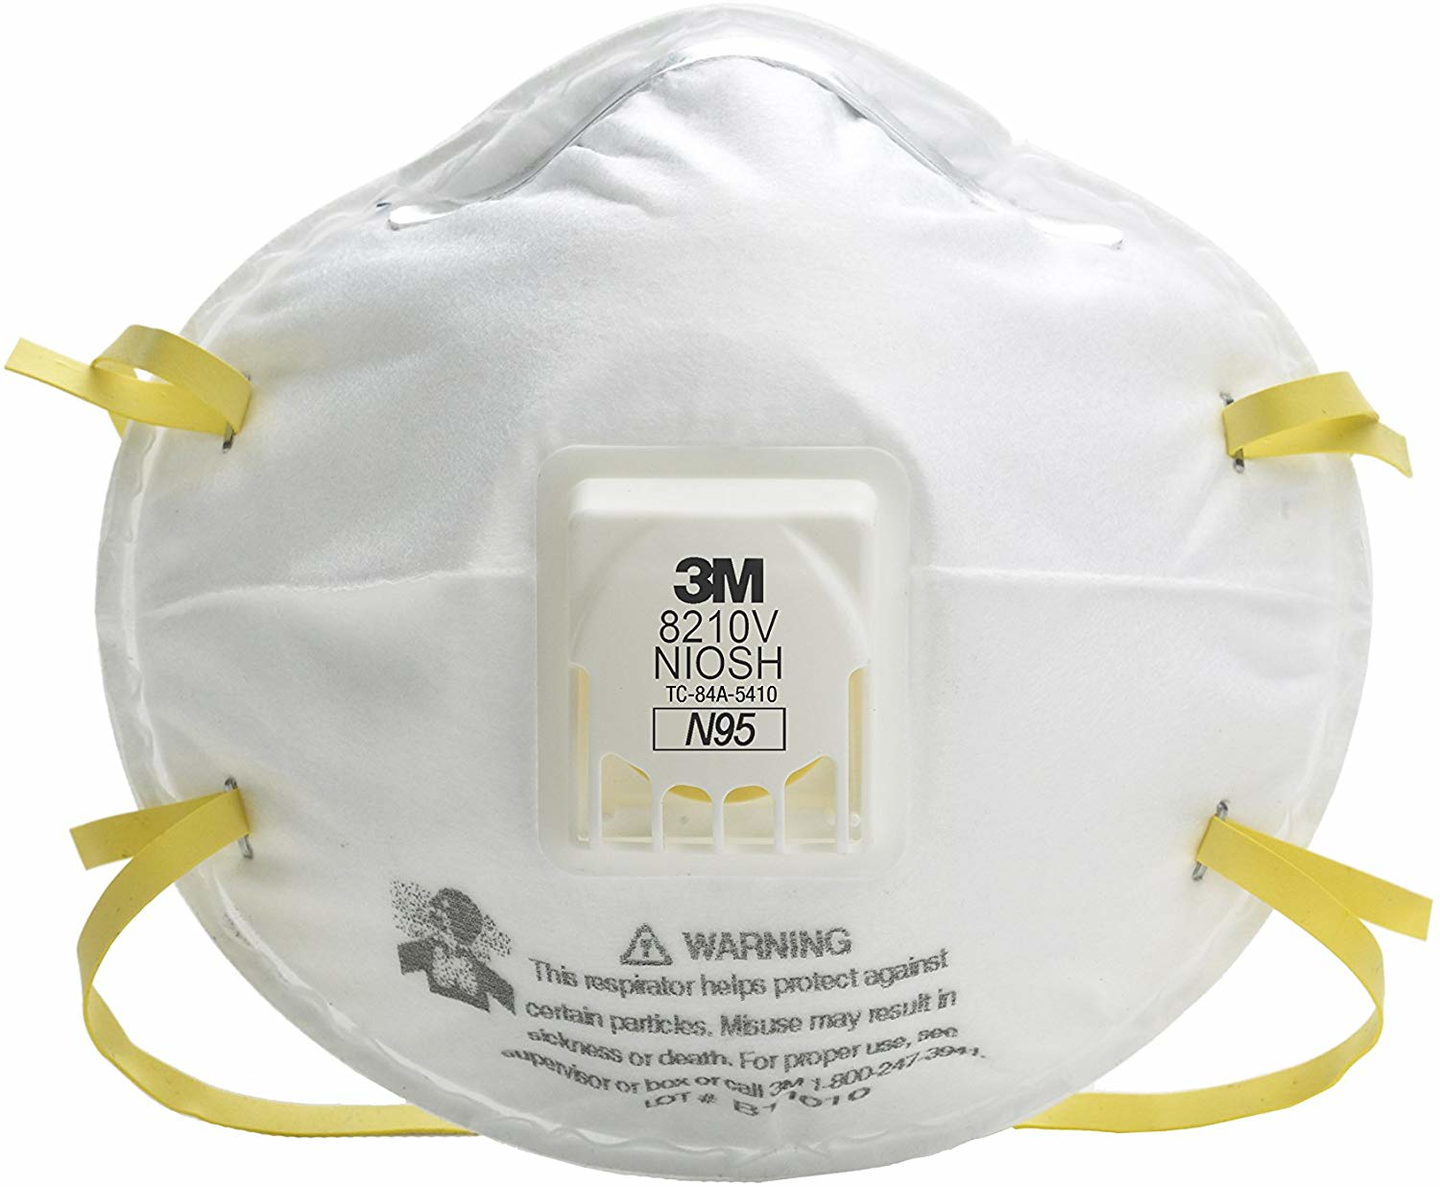 3m n95 masque virus